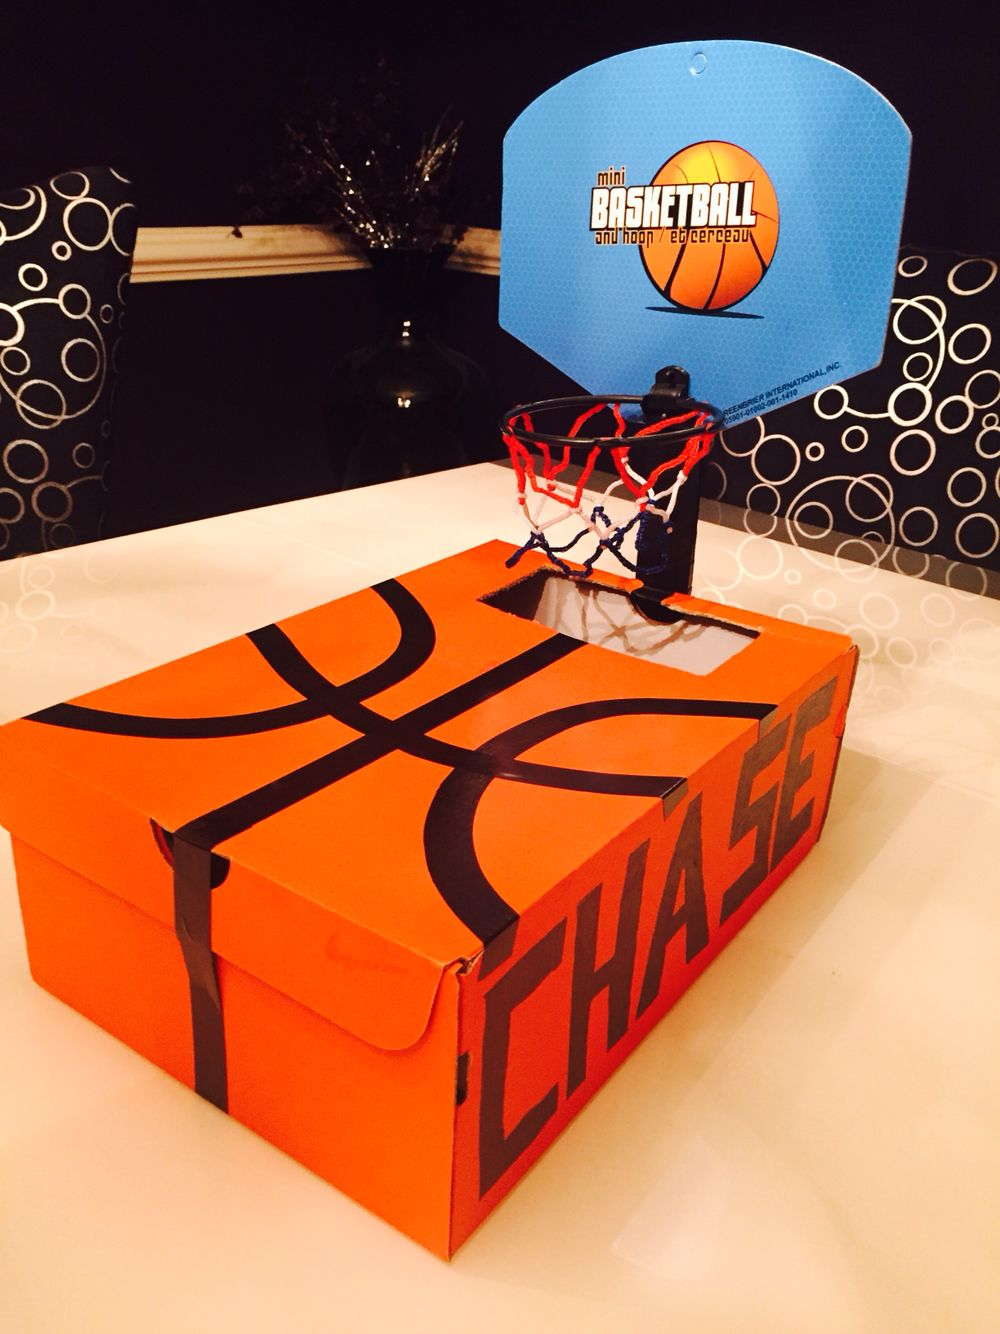 Basketball Valentine Box Used Orange Shoe Box Electric Tape And Small Goal Purchased A Boys Valentines Boxes Kids Valentine Boxes Basketball Valentine Boxes